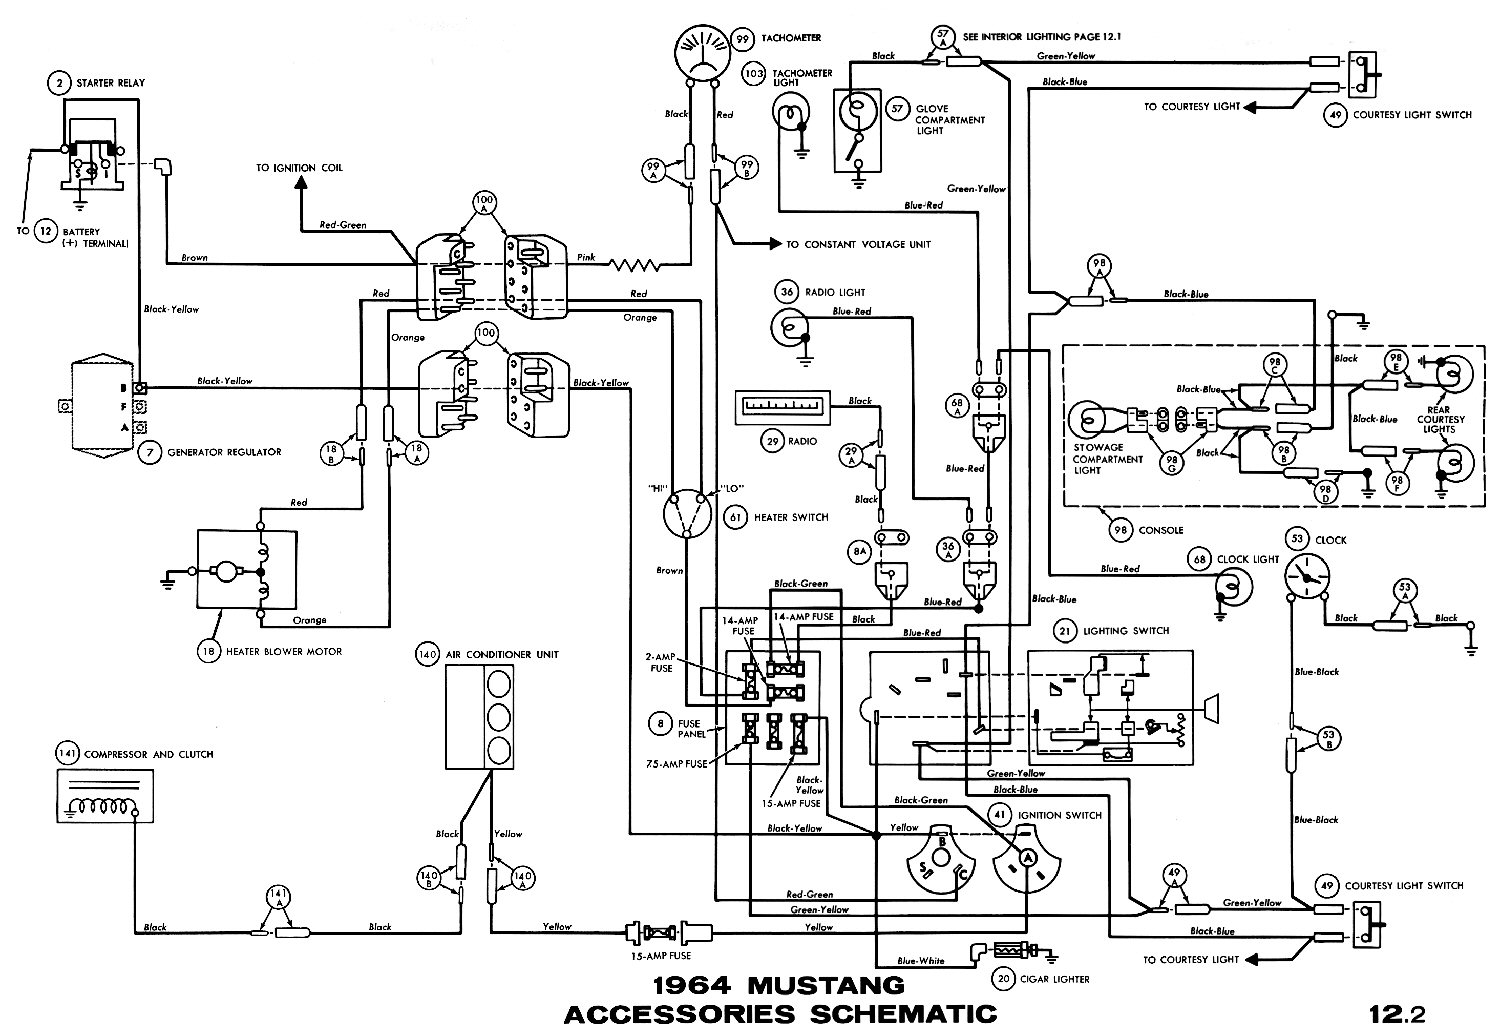 1970 Mustang Wiring Diagram Free For You 1949 1951 Ford Dash Ignition Switch Simple Schema Rh 7 8 52 Aspire Atlantis De